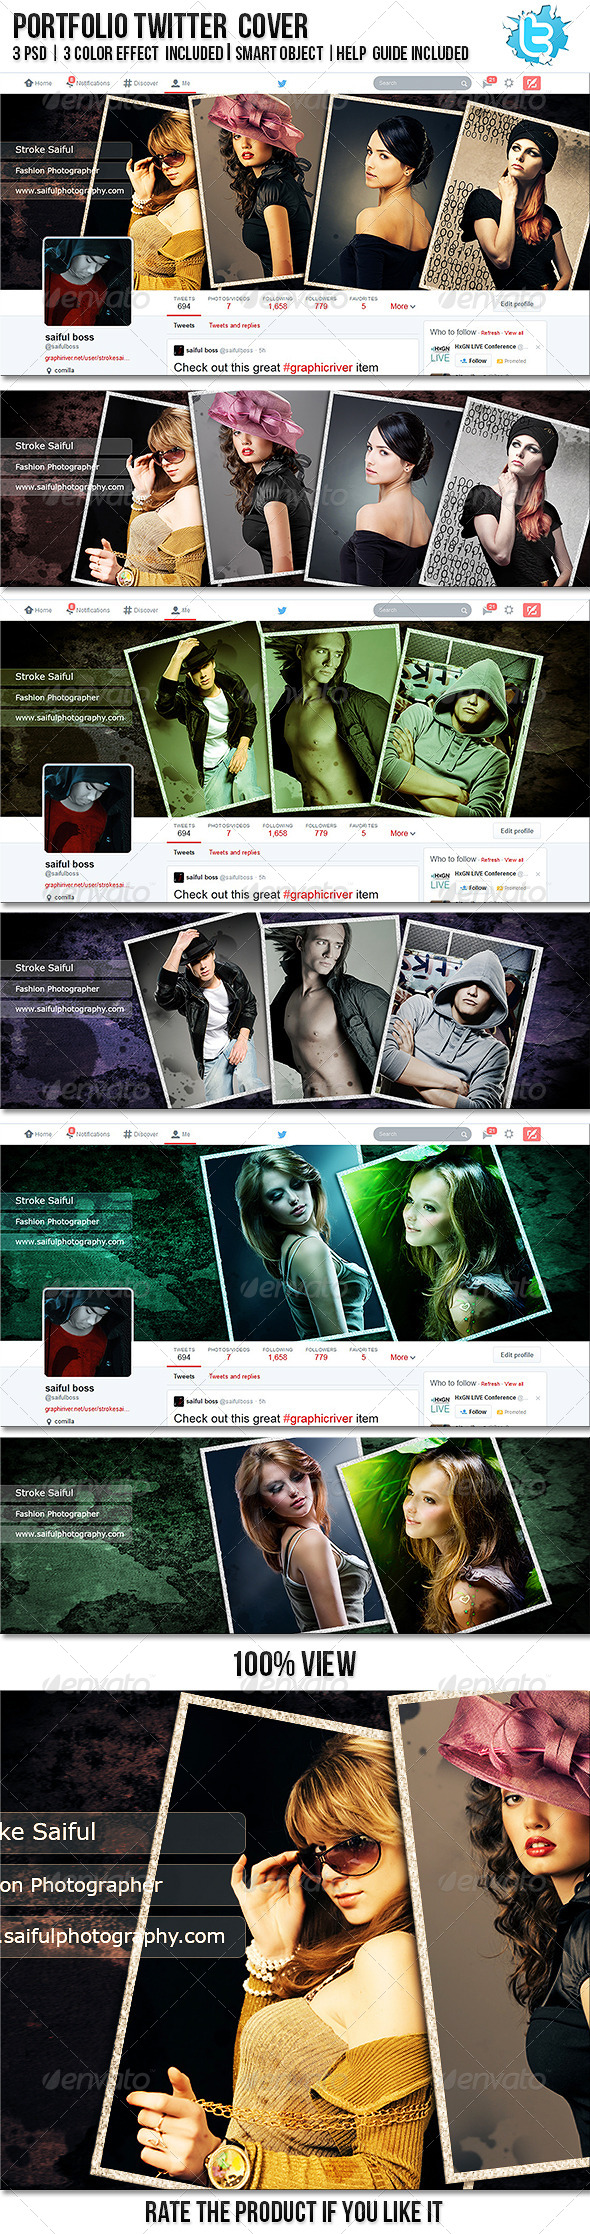 GraphicRiver Portfolio Twitter Profile Cover 8276180